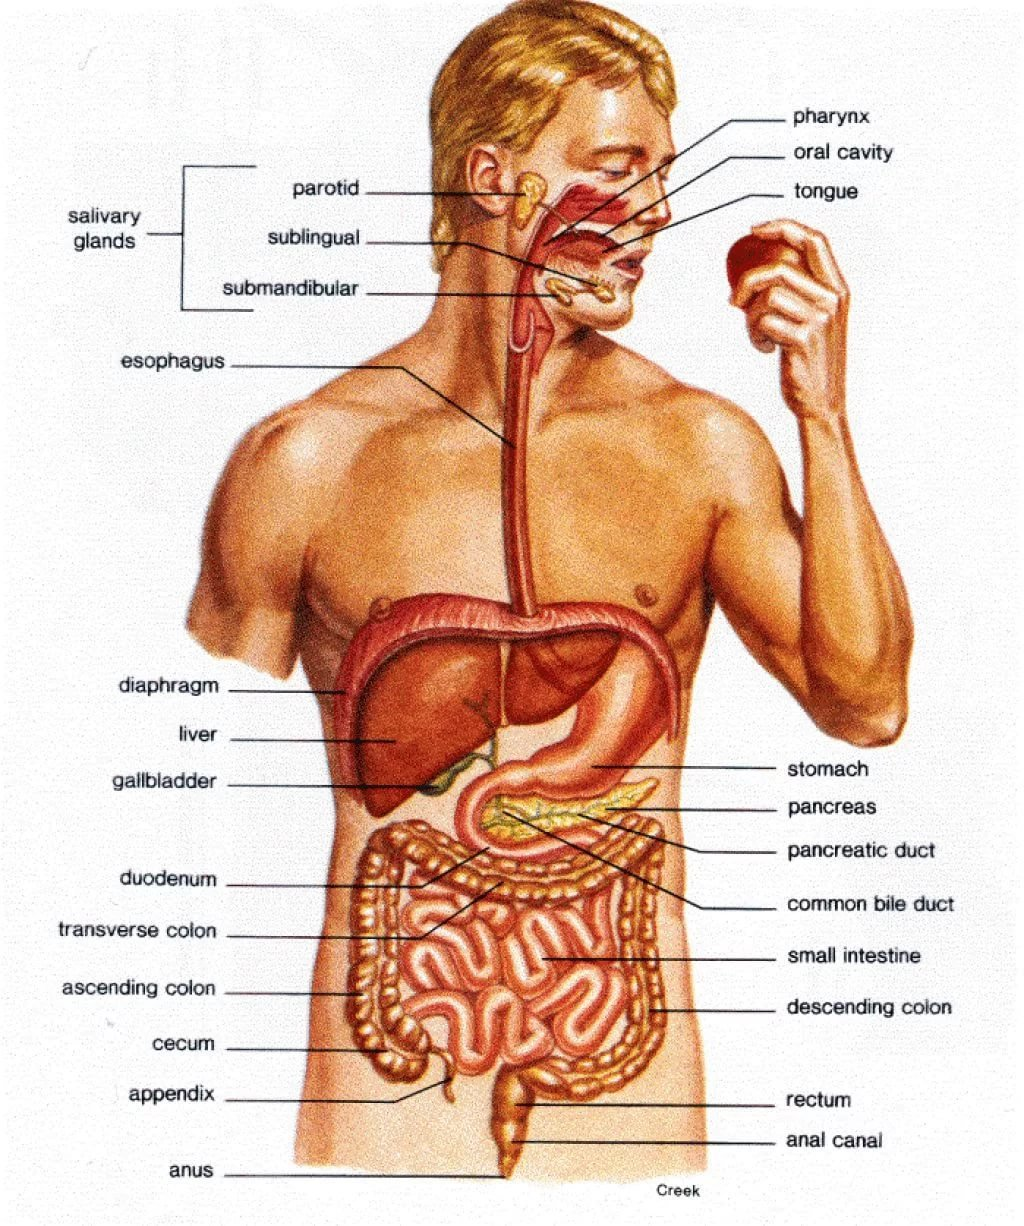 Organ System Of Liver Fosfe Card From User Big2017 In